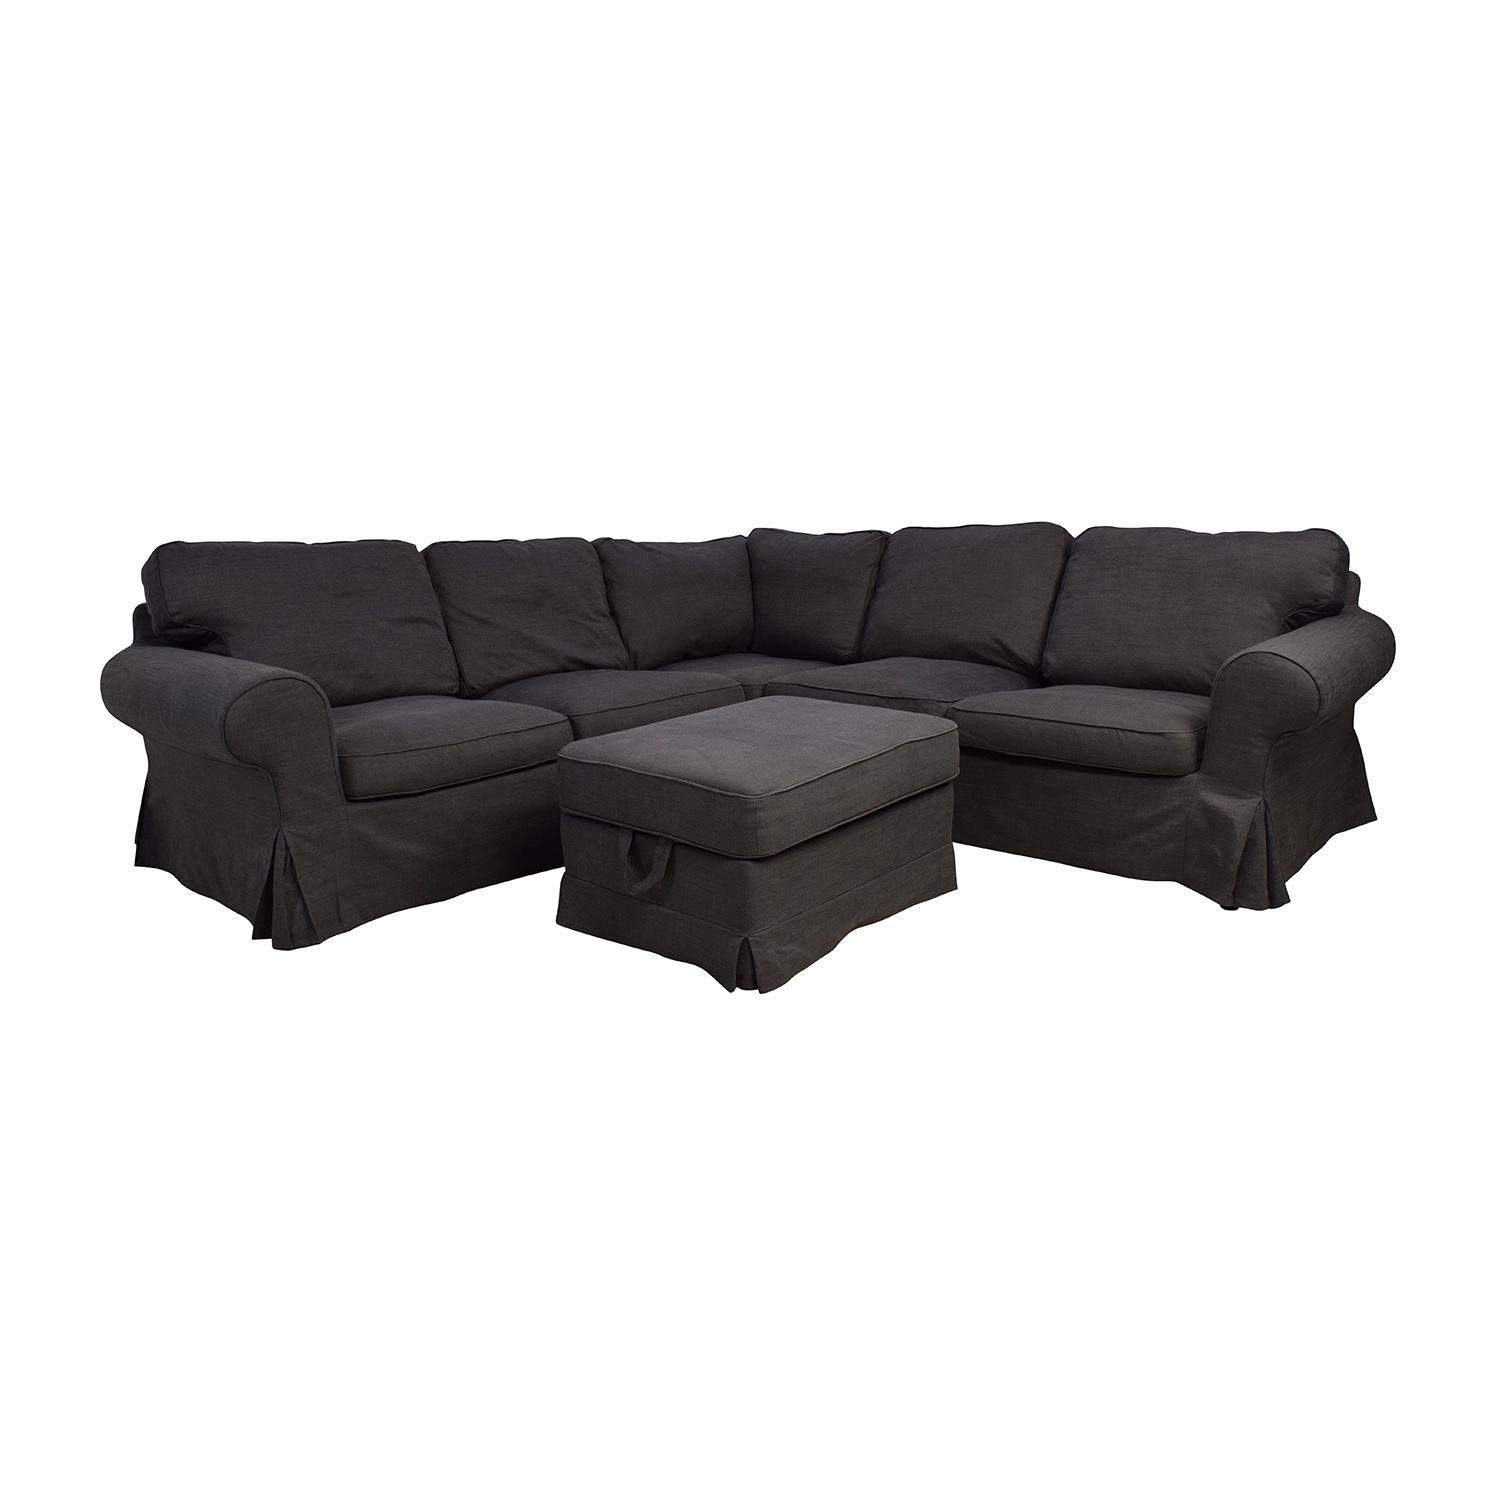 39% Off - Ikea Ikea Ektorp Gray Corner Sectional With Ottoman / Sofas within Used Sectionals